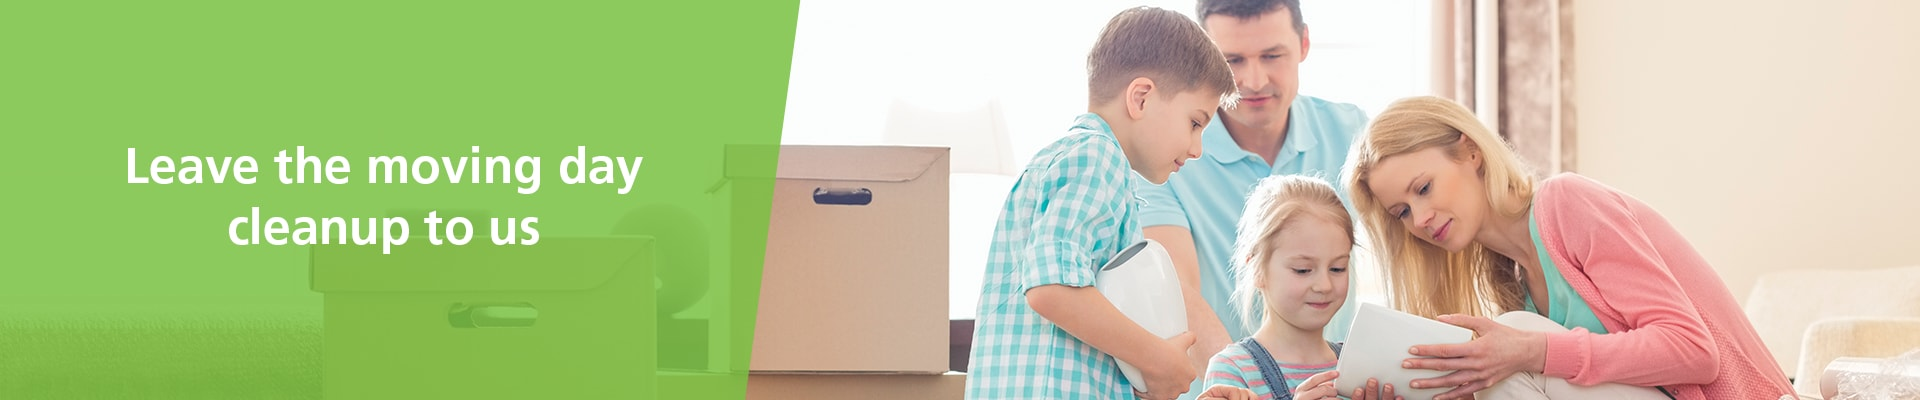 Leave the moving day cleanups to us - move in and move out package